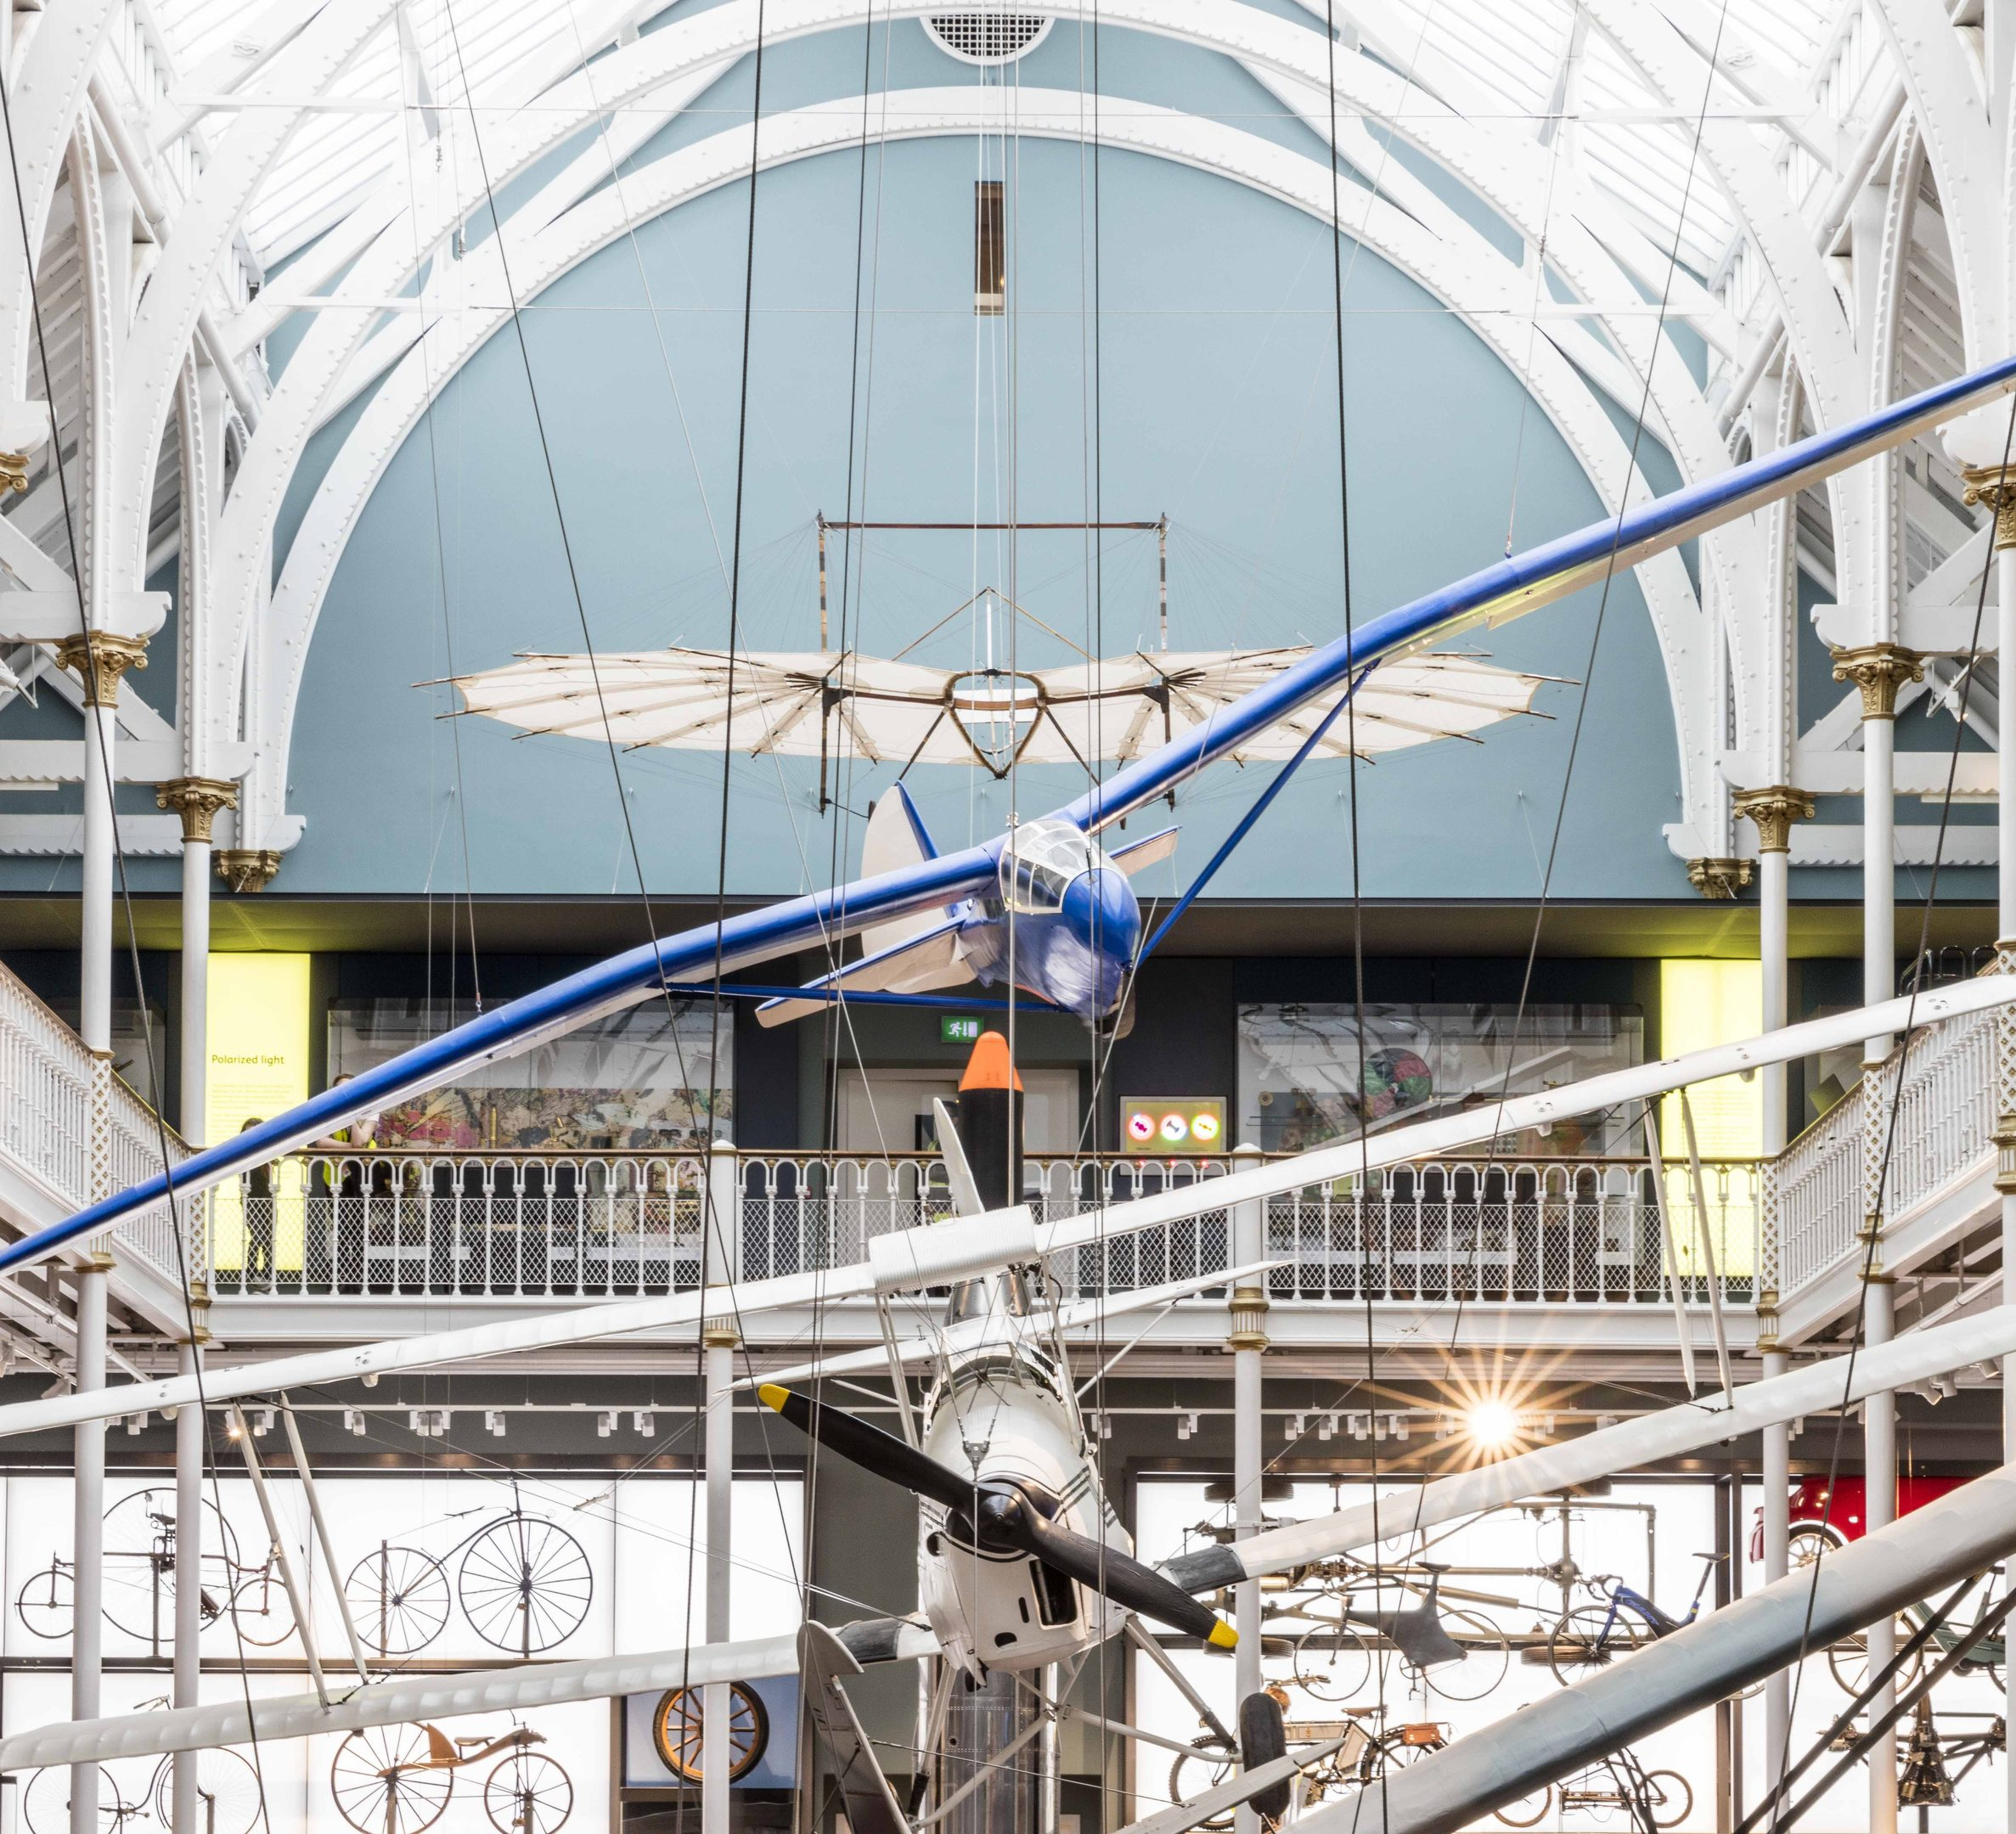 The Science and Technology Galleries at the National Museum of Scotland (National Museum of Scotland)